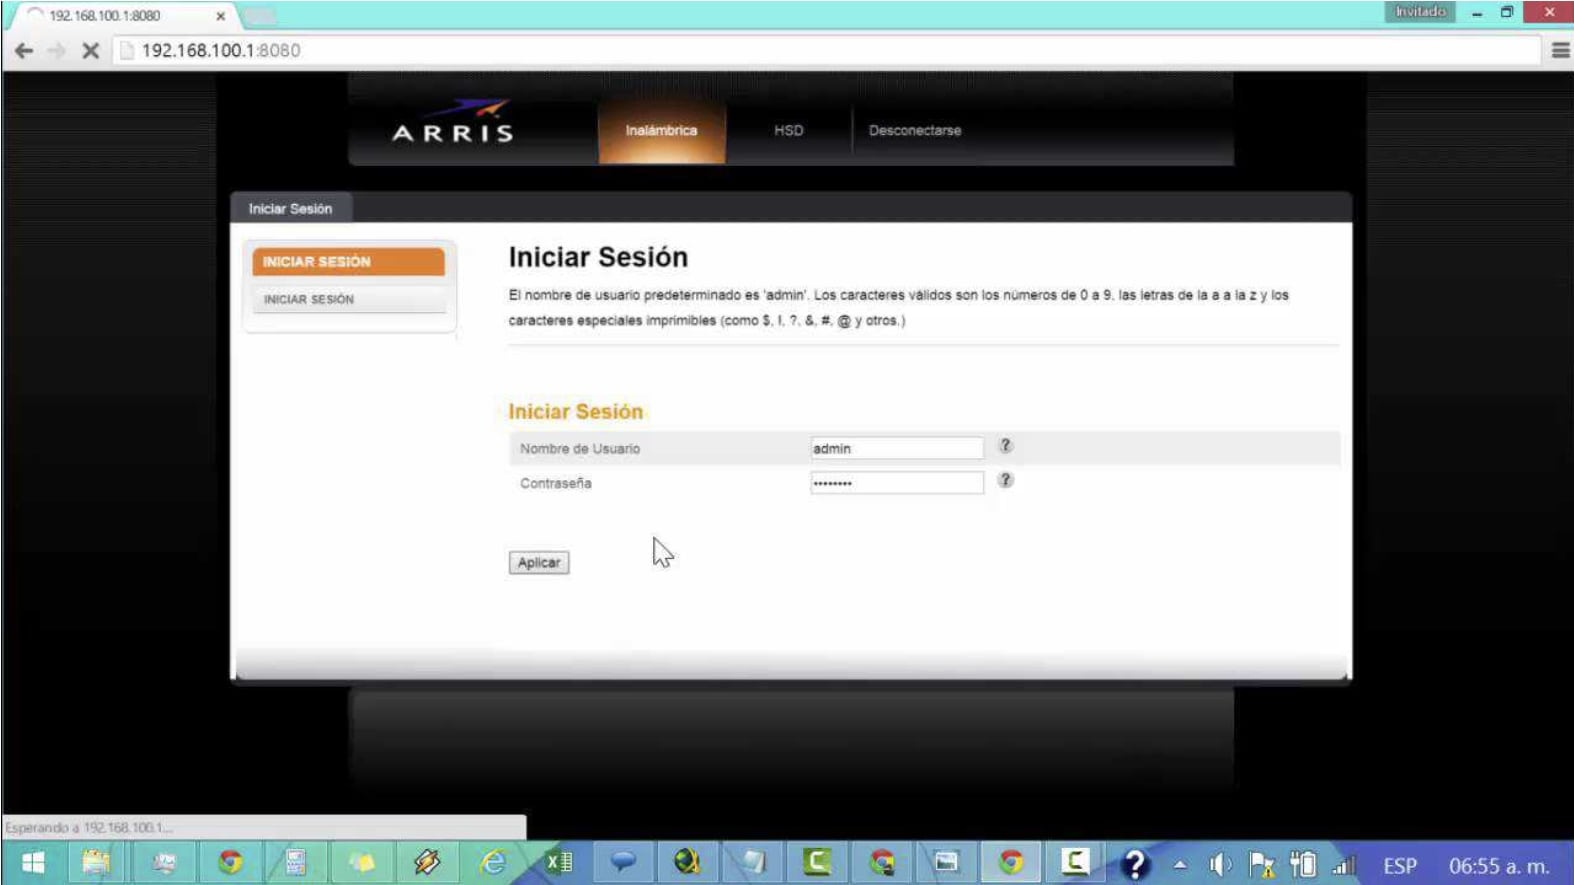 Arris NVG599 Router Login Page